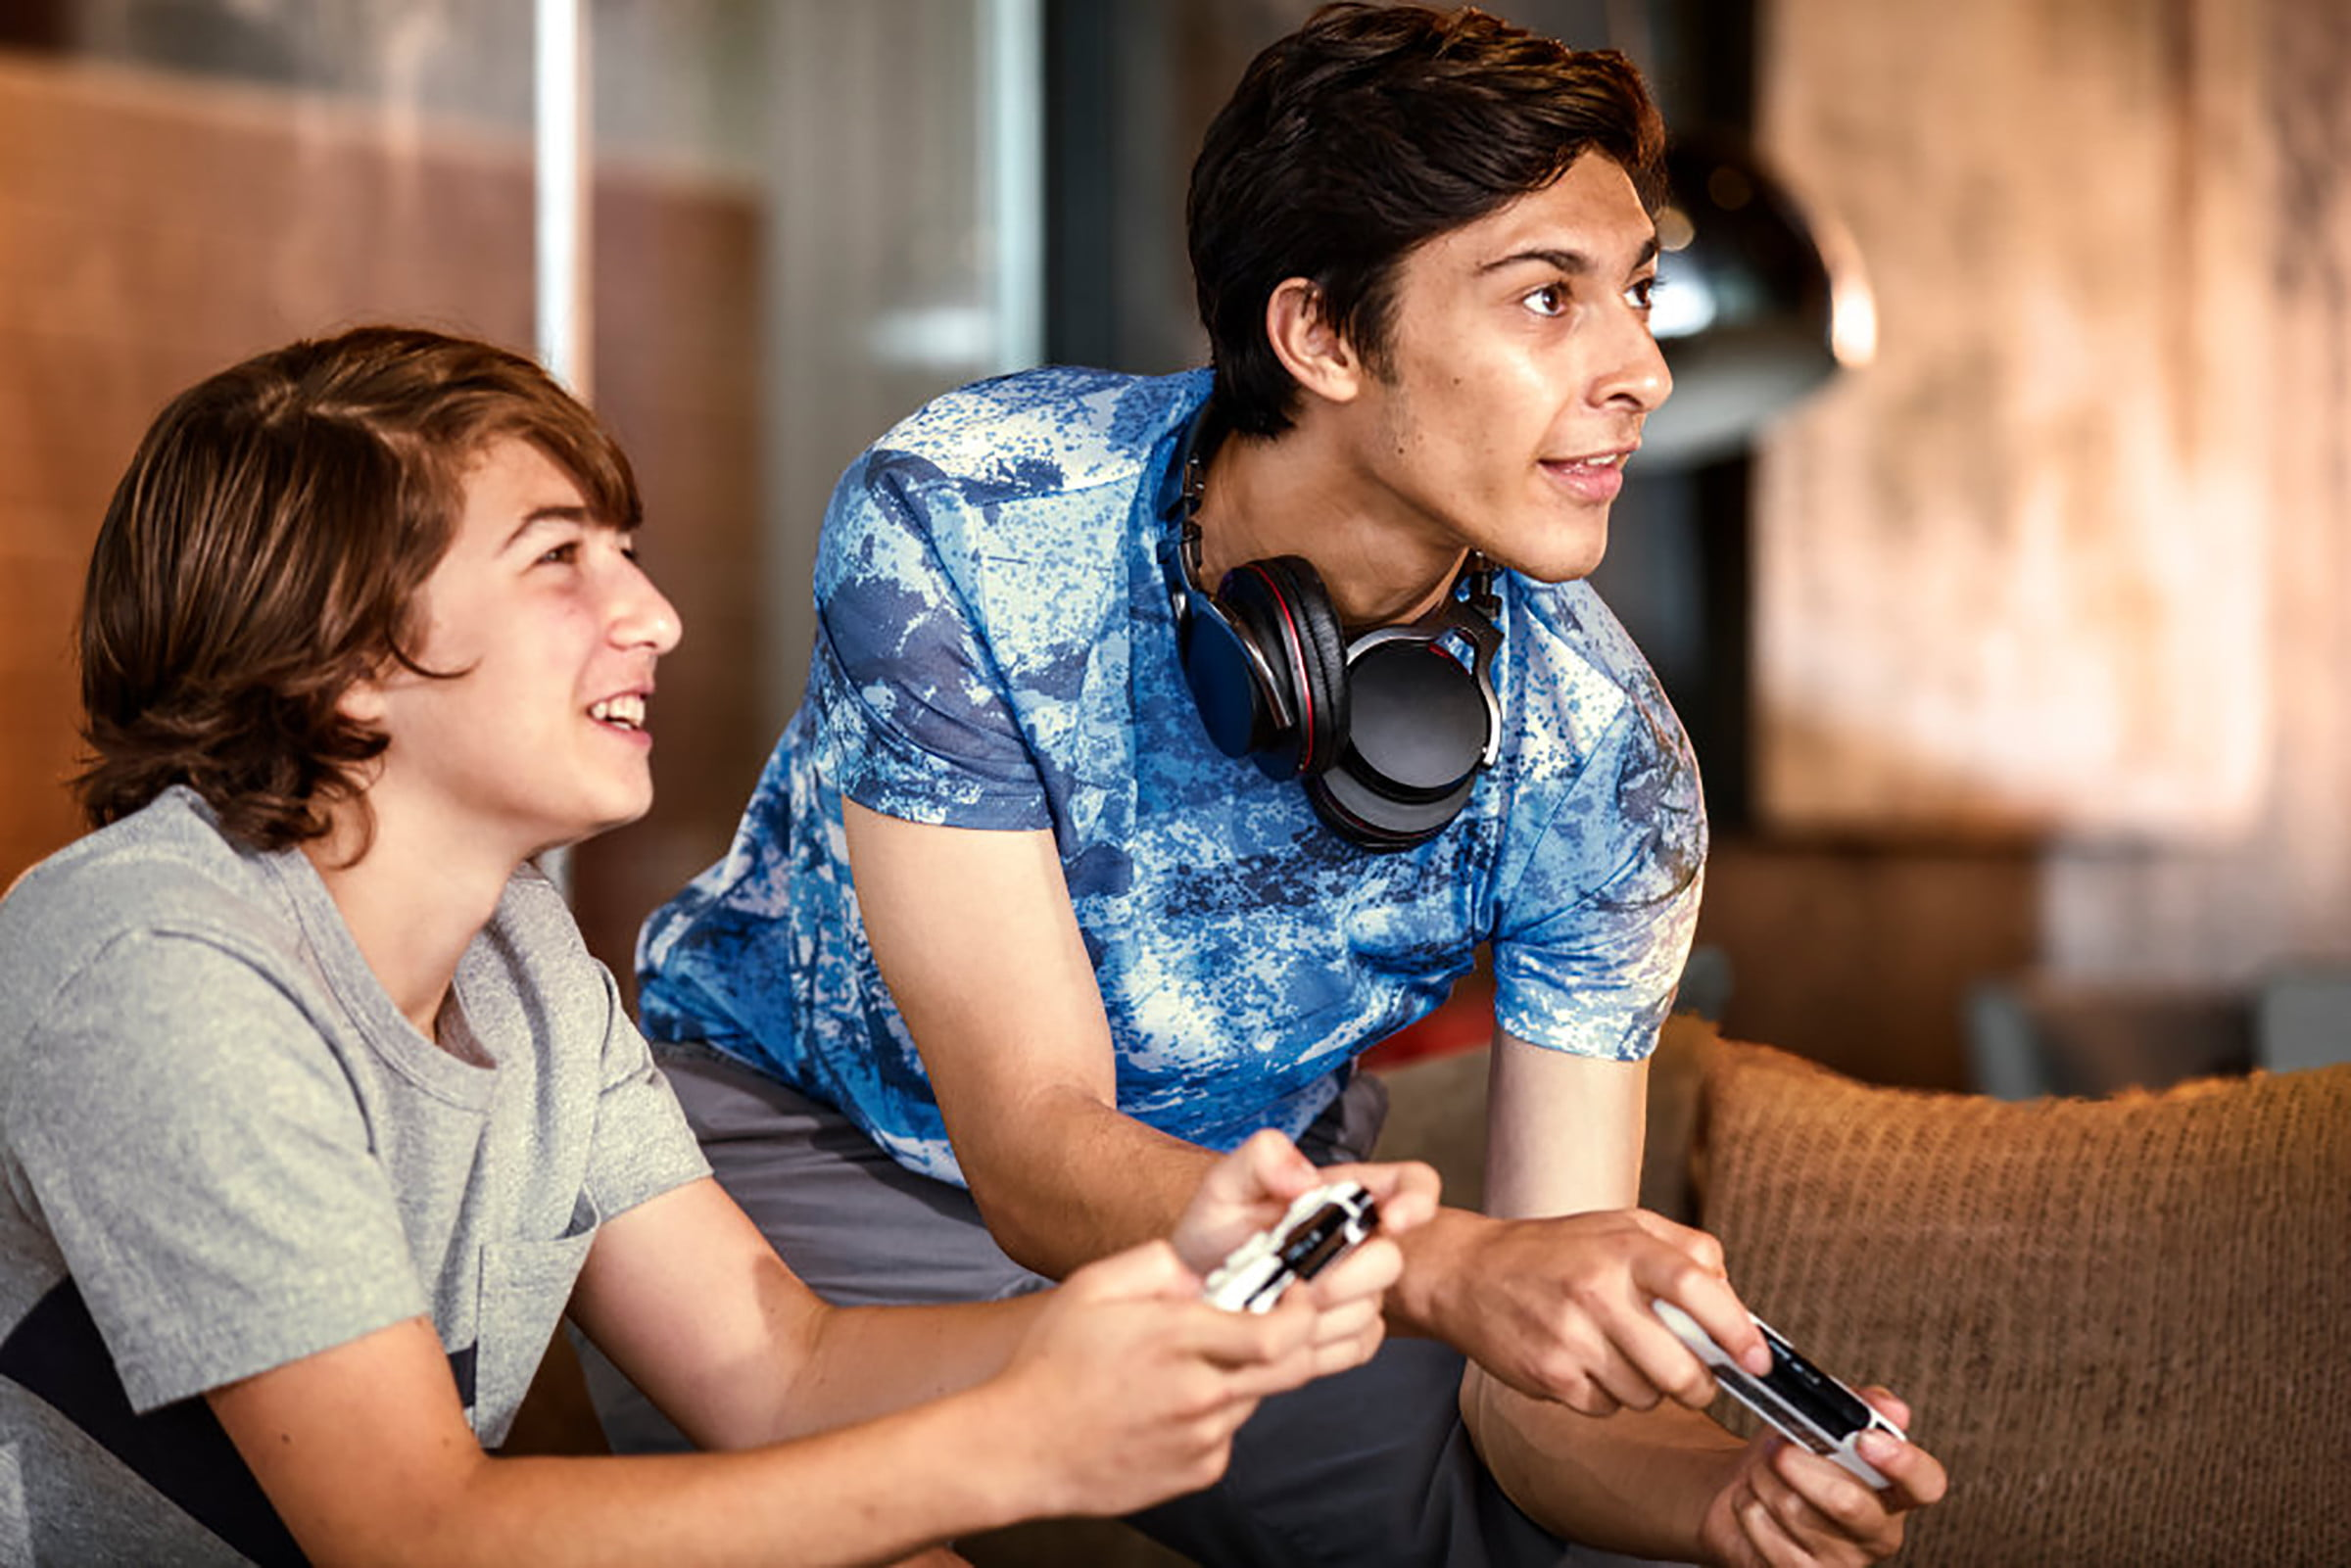 Teens with headphones playing video games.